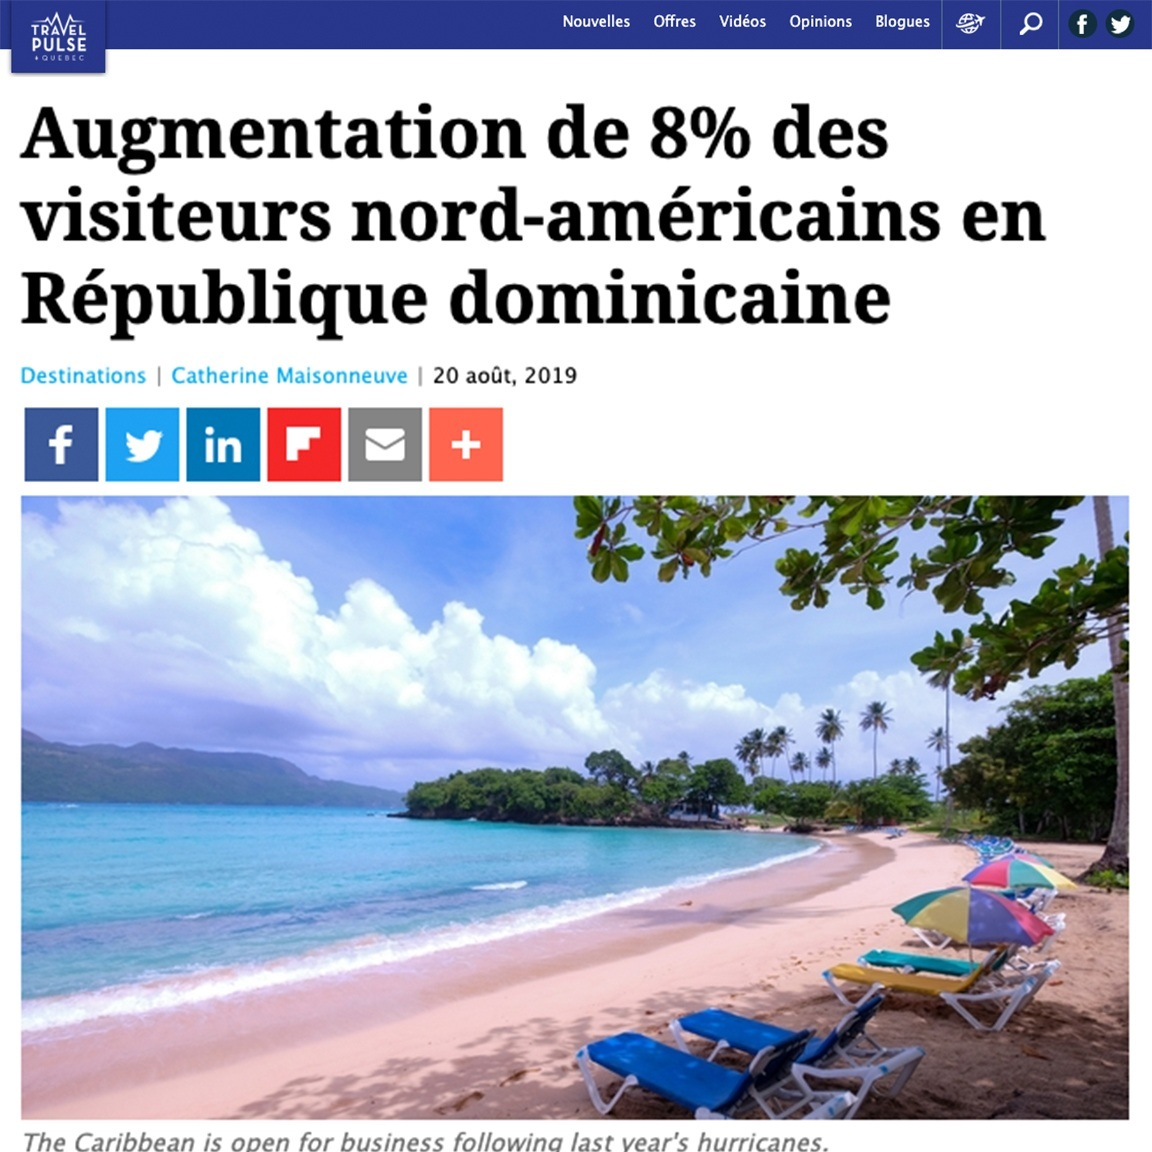 TRAVEL PULSE QUEBEC